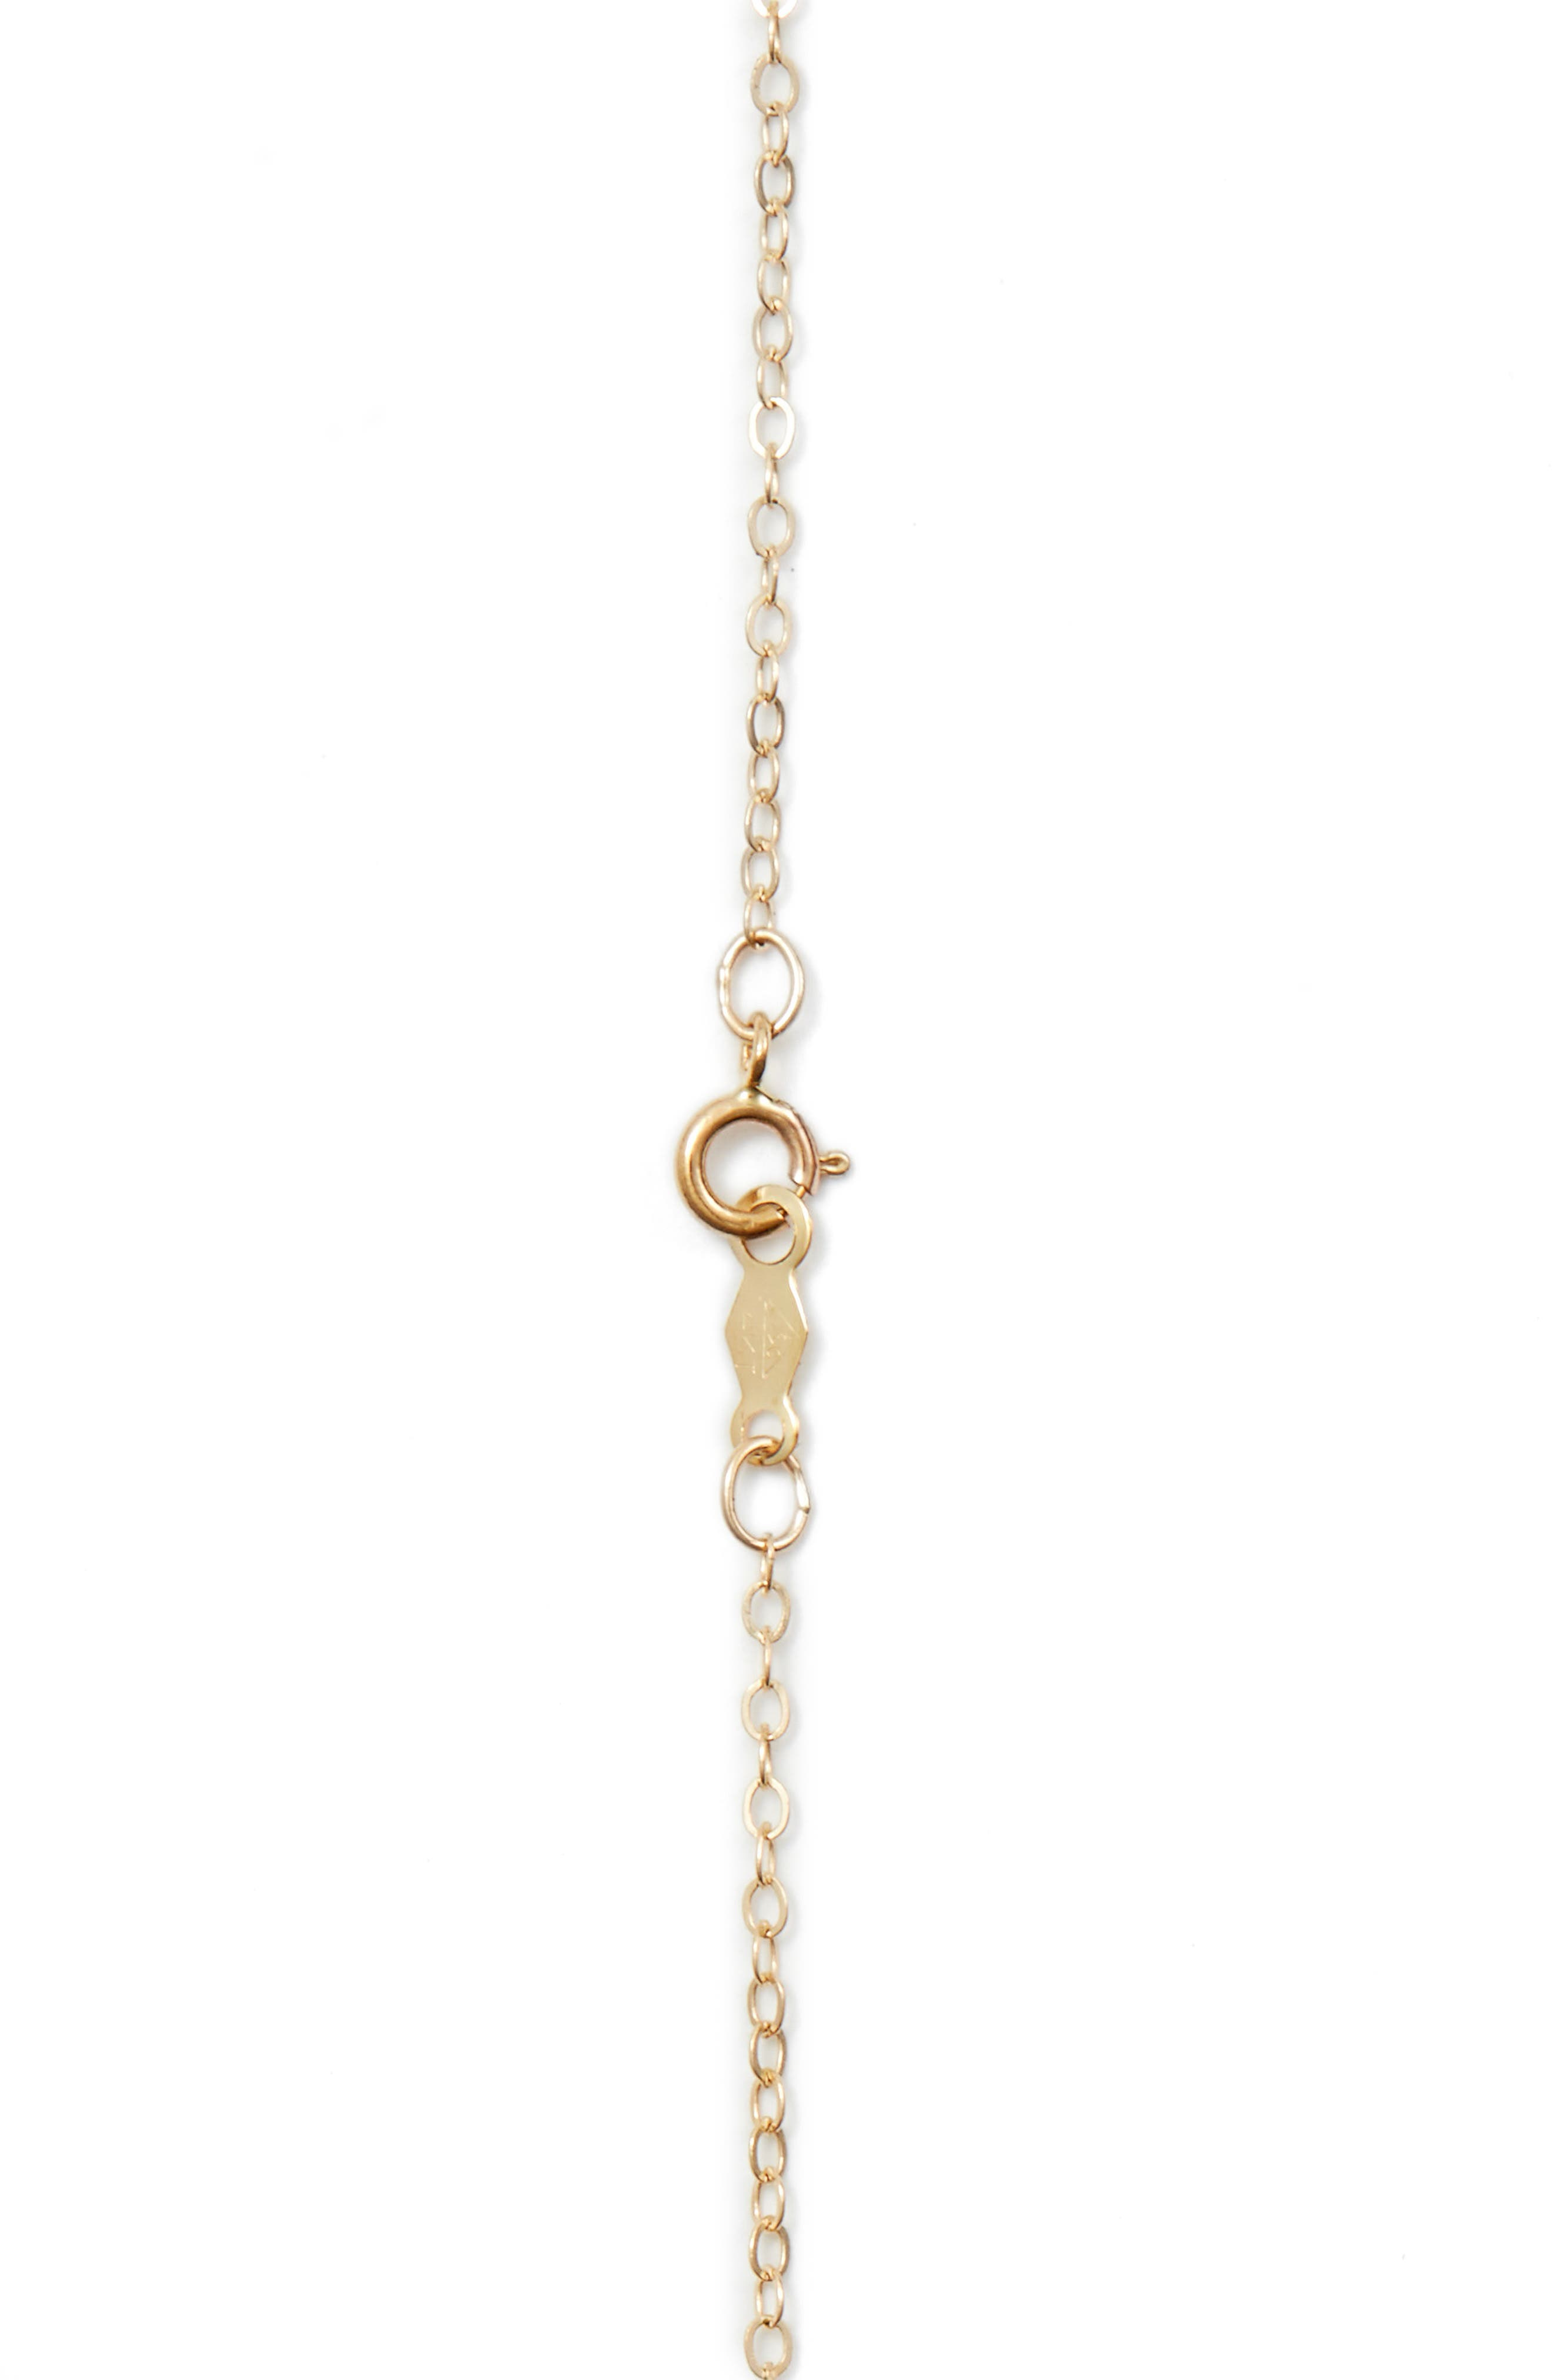 Triple Pearl Pendant Necklace,                             Alternate thumbnail 3, color,                             YELLOW GOLD/ WHITE PEARL